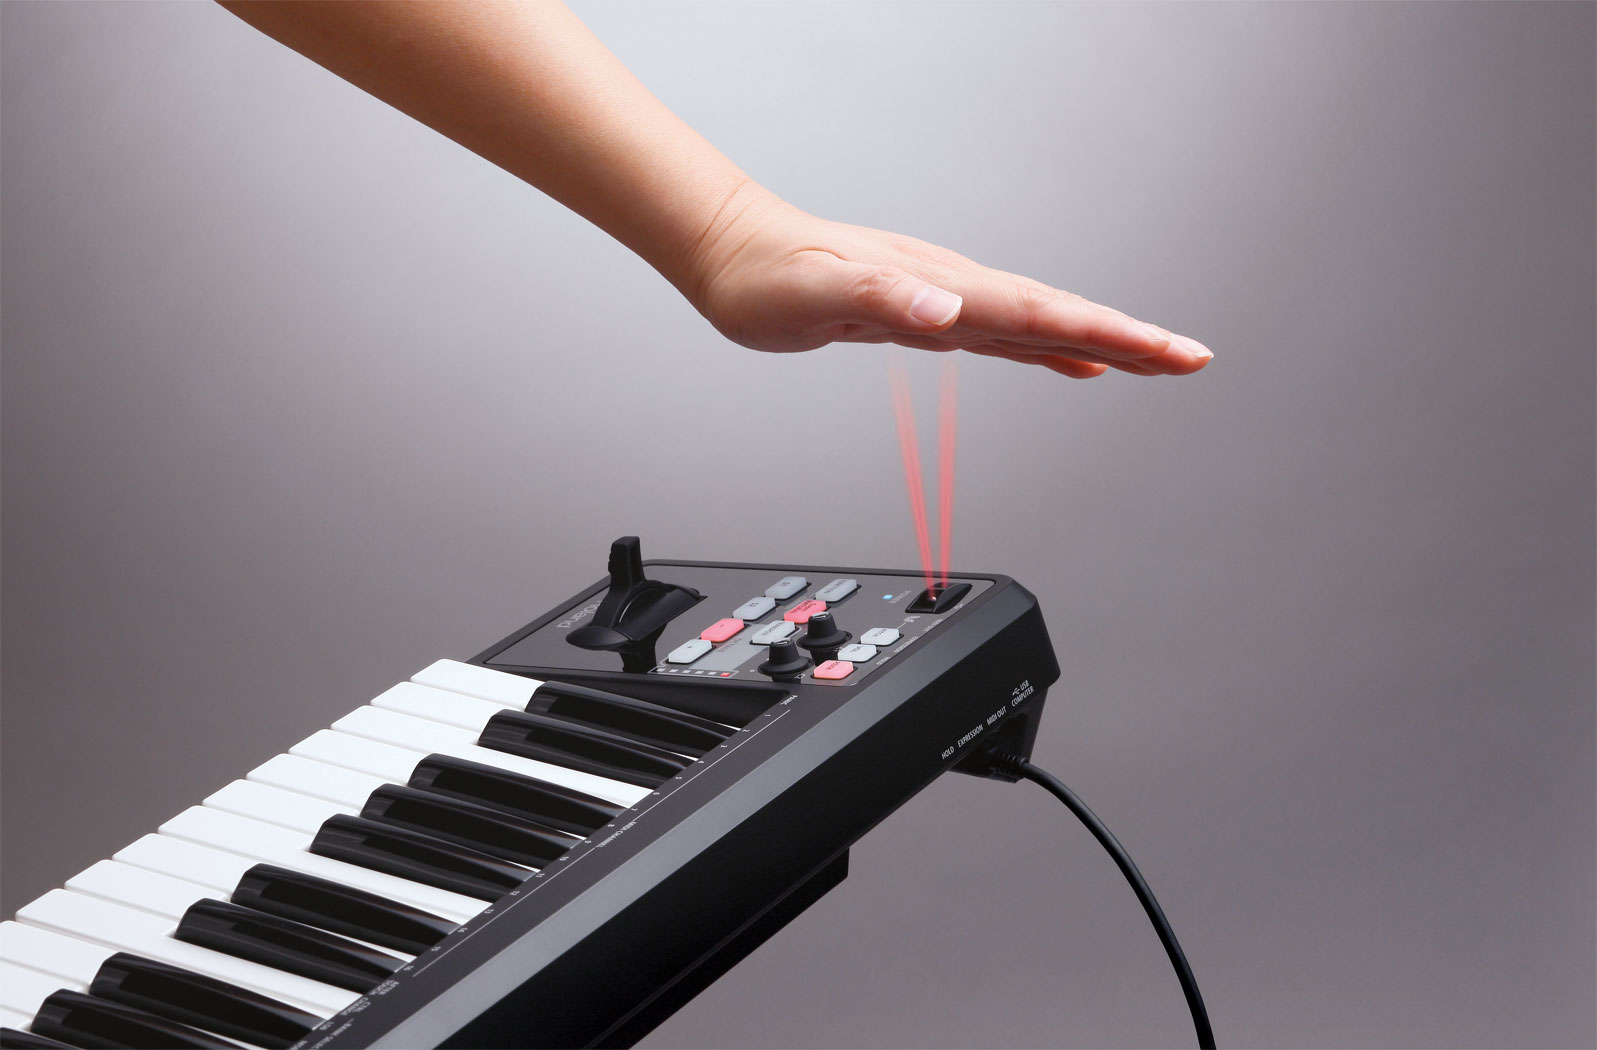 ROLAND A-49 KEYBOARD DRIVERS FOR WINDOWS 10